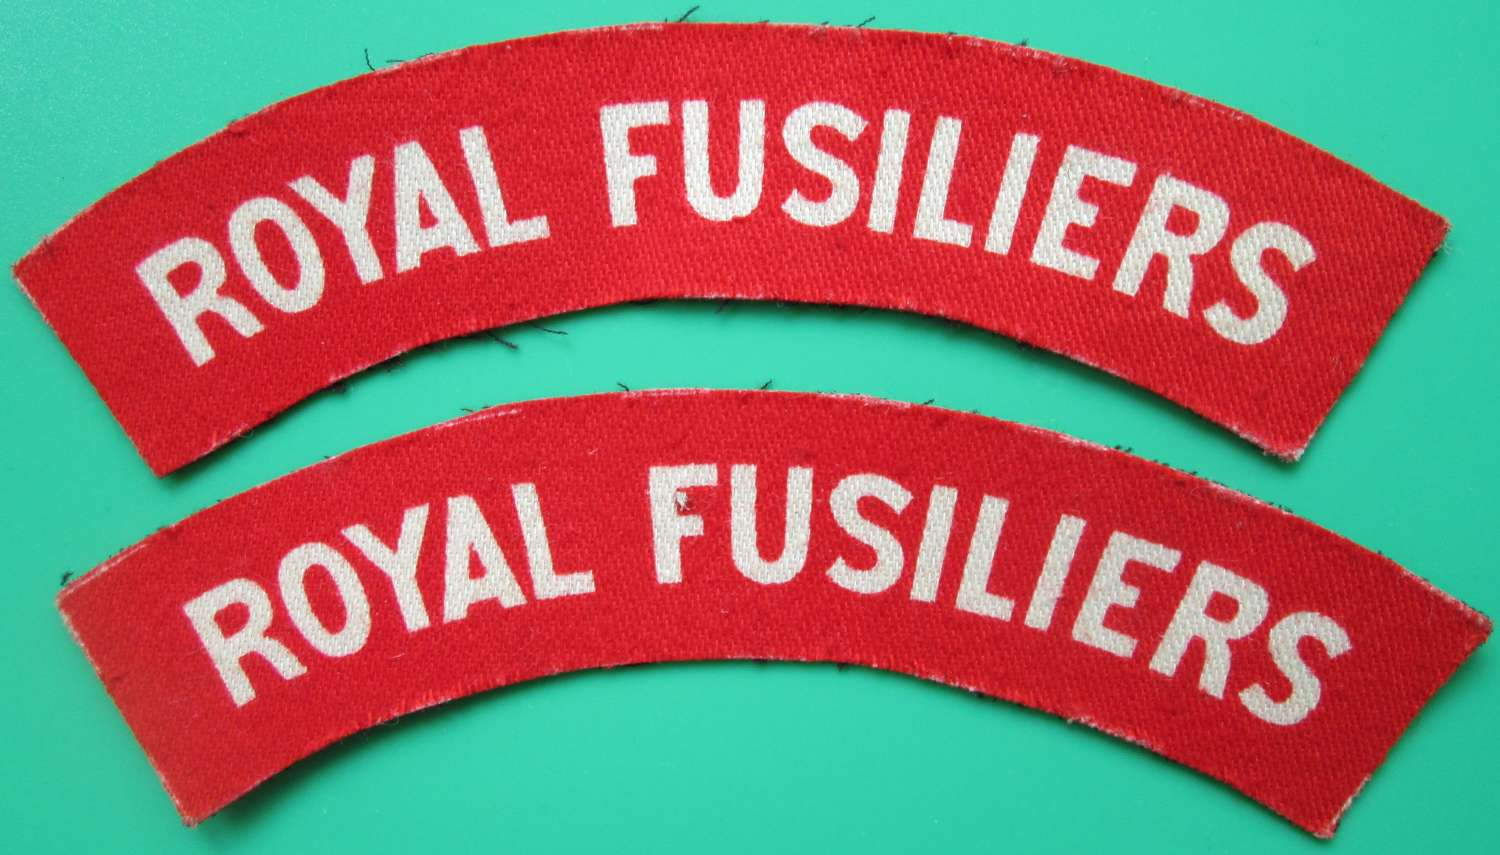 A PAIR OF ROYAL FUSILIERS SHOULDER TITLES